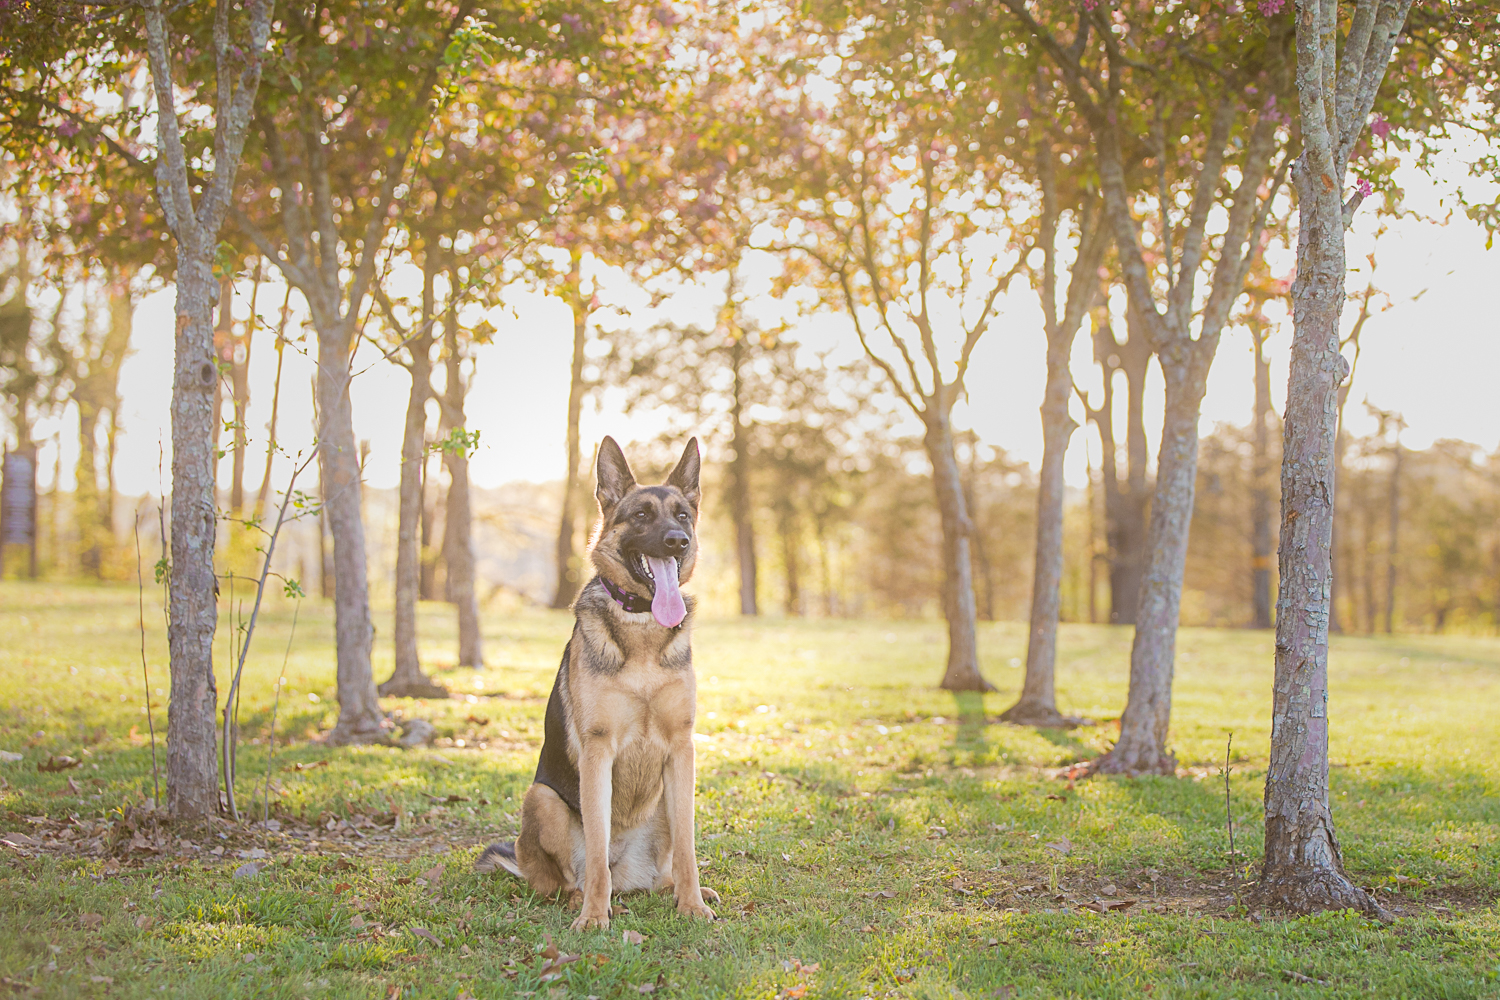 German Shepherd at Barfield Crescent Park